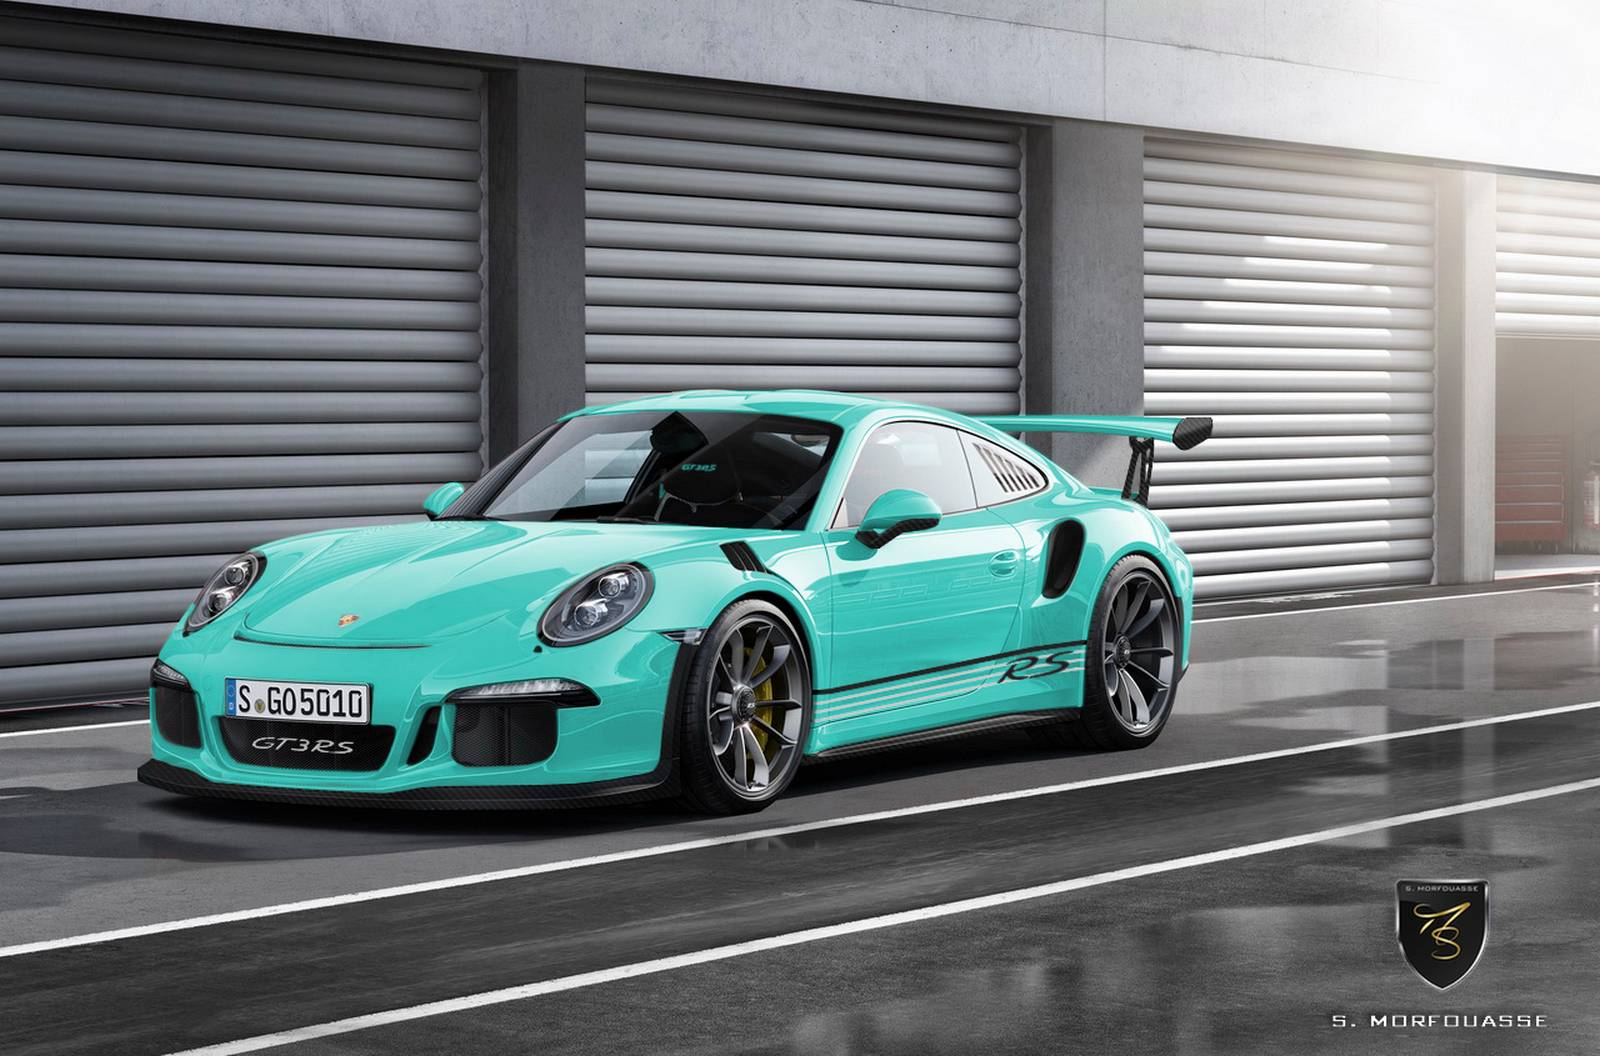 2016 porsche 911 gt3 rs imagined in multiple colors gtspirit. Black Bedroom Furniture Sets. Home Design Ideas